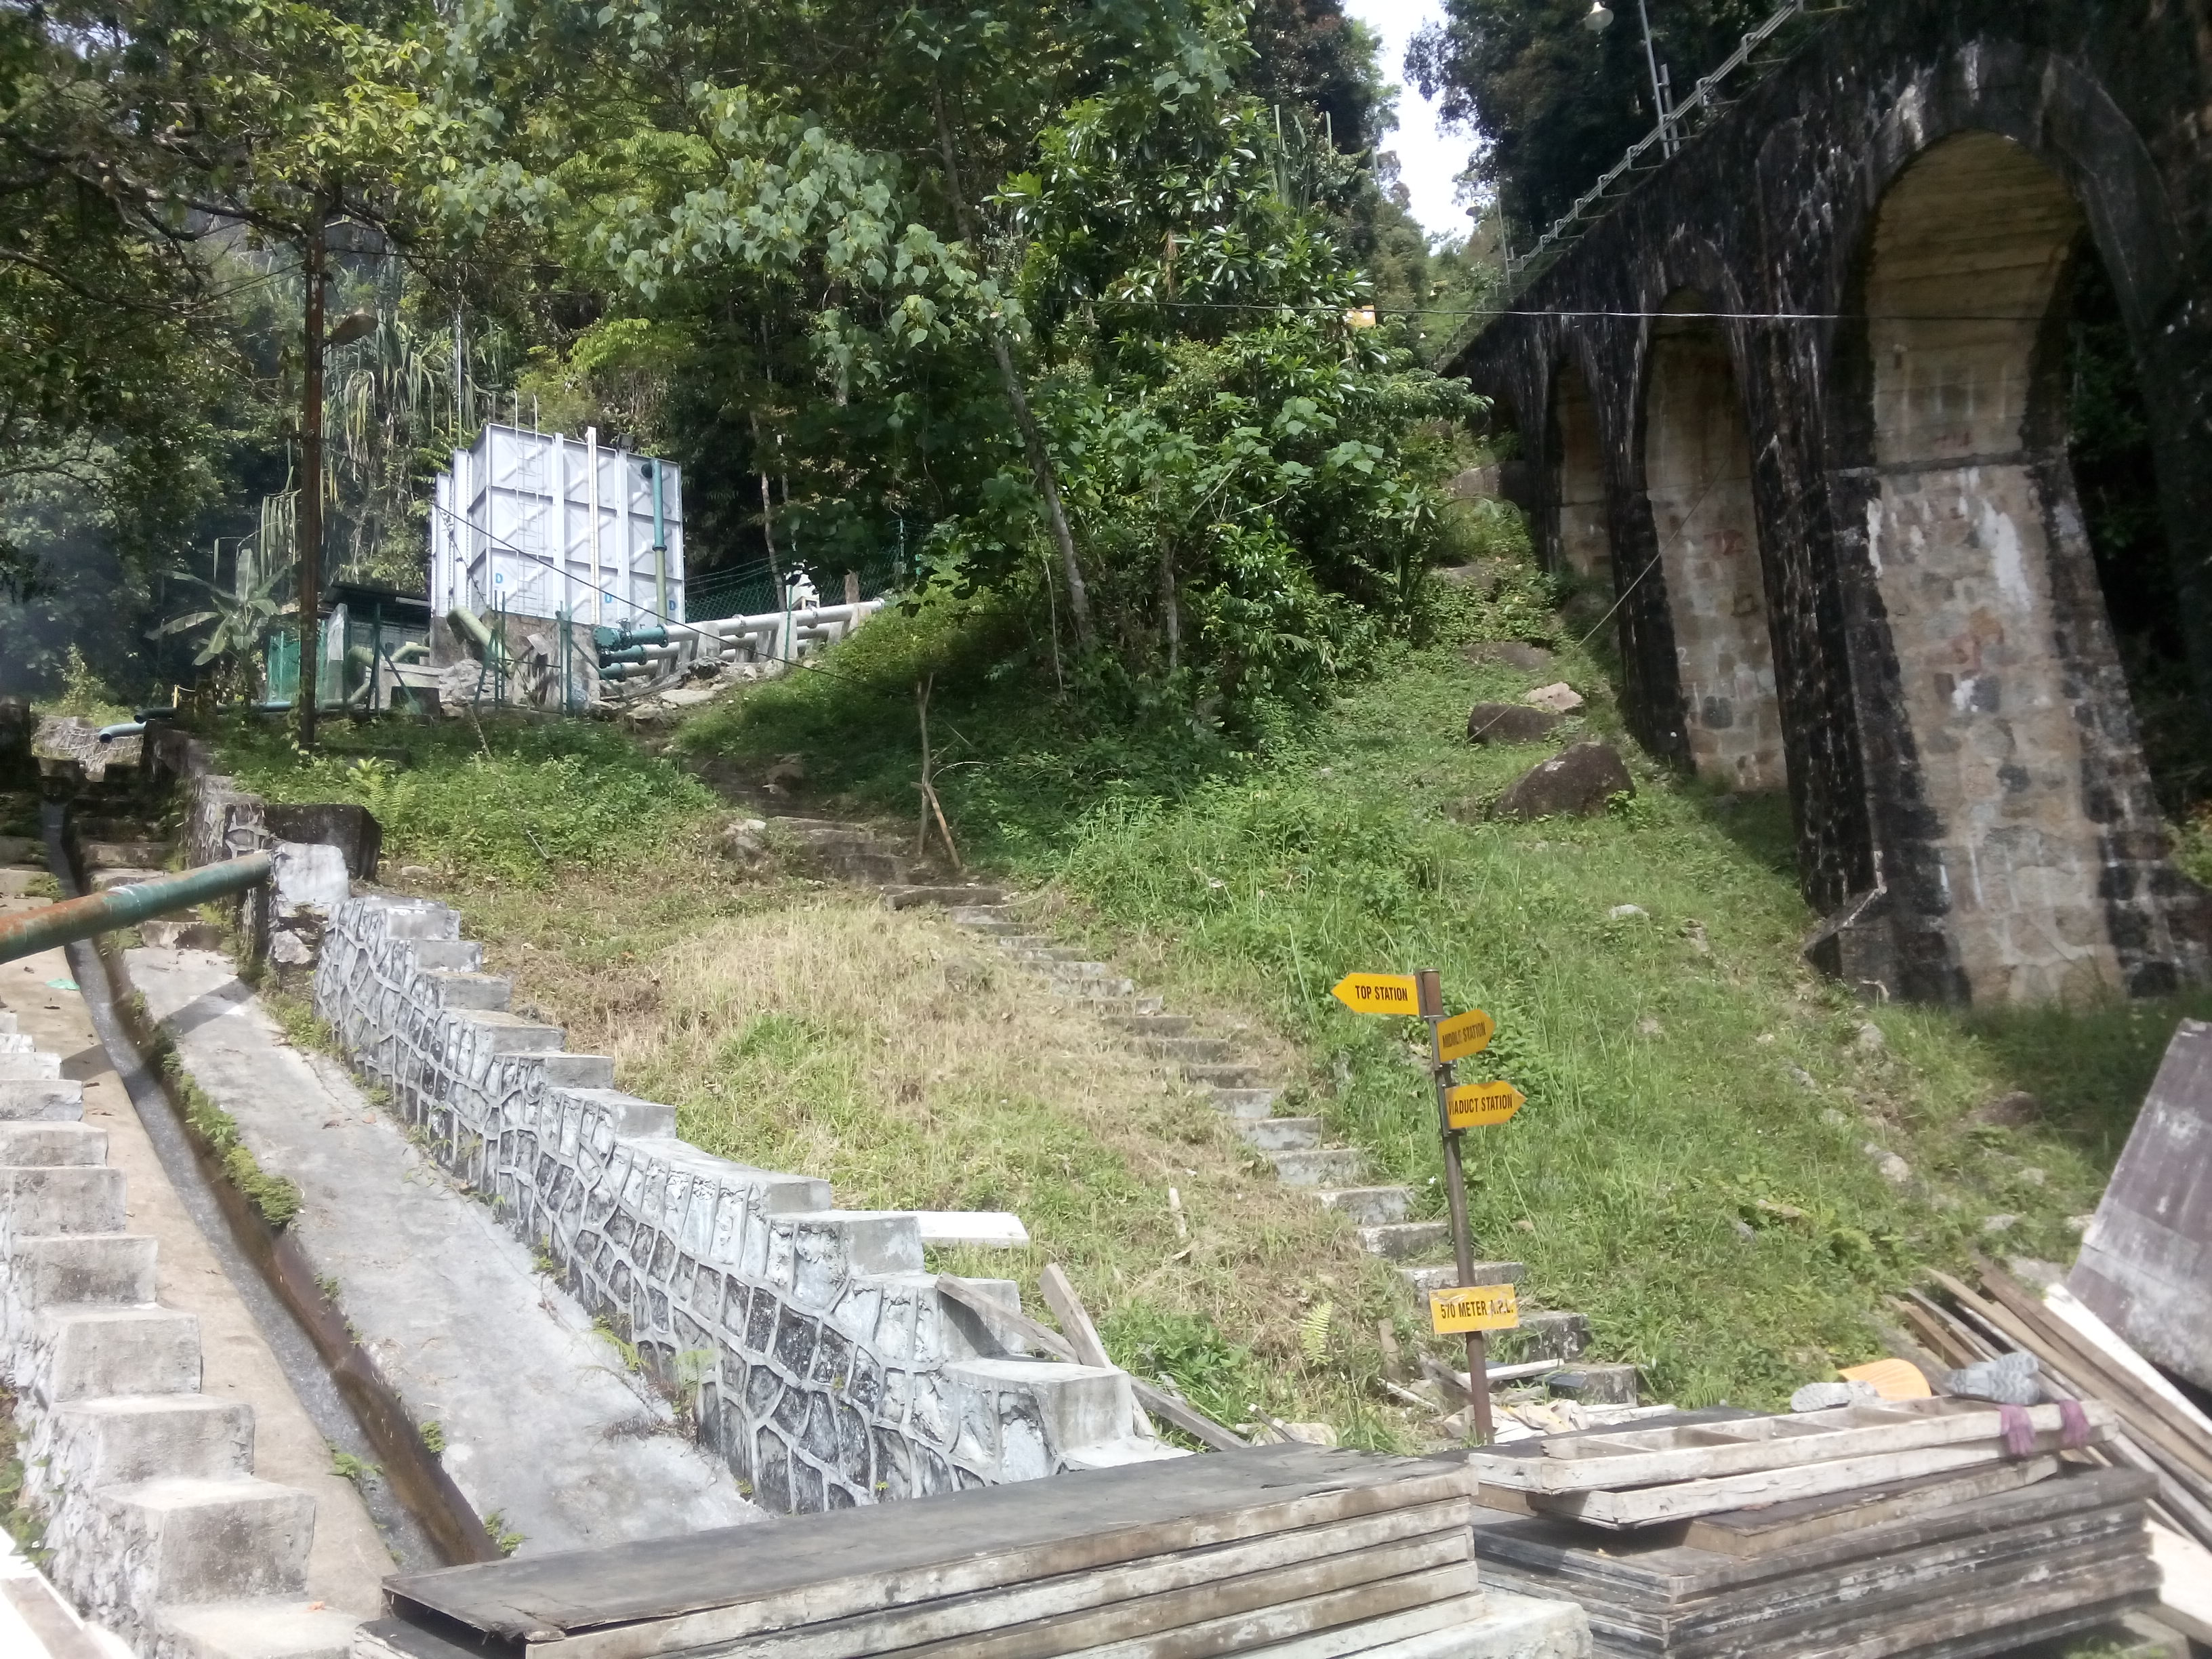 A railway bridge on the right, and steep steps amid greenery